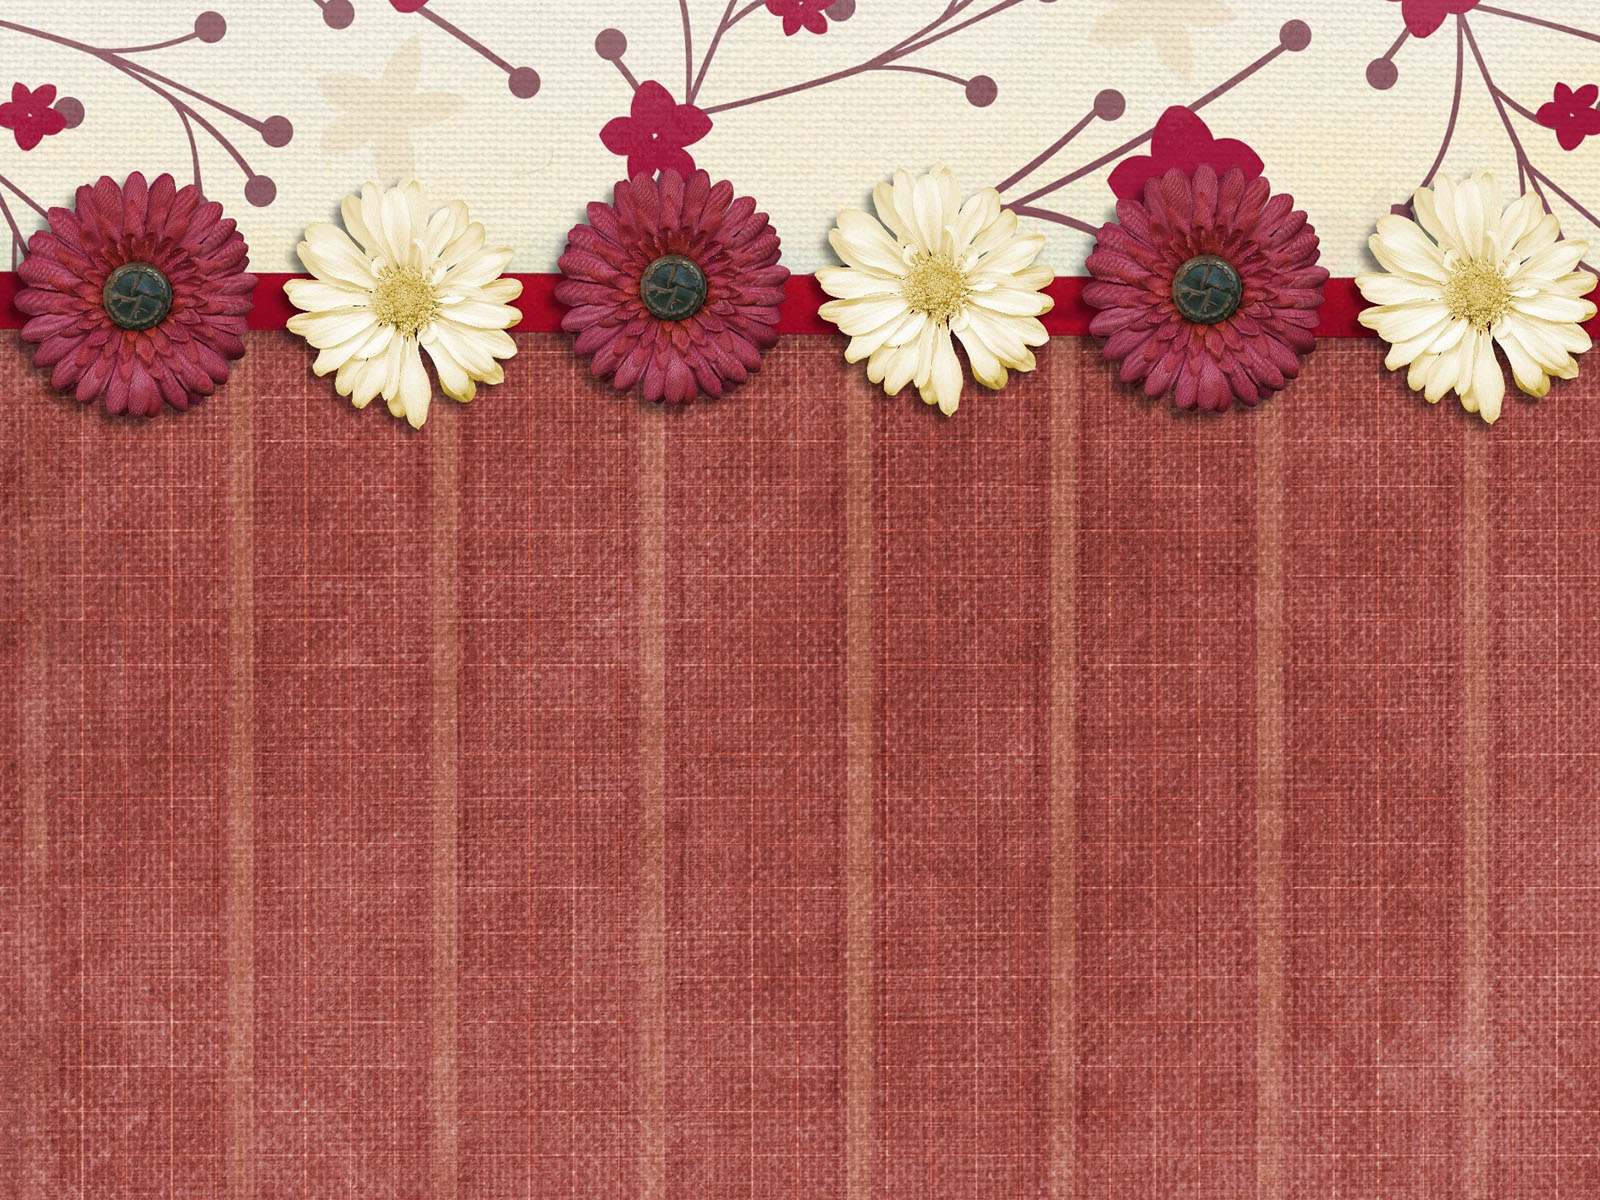 Flowers Ppt Backgrounds Page 2 Of 9 Free Ppt Grounds And Templates